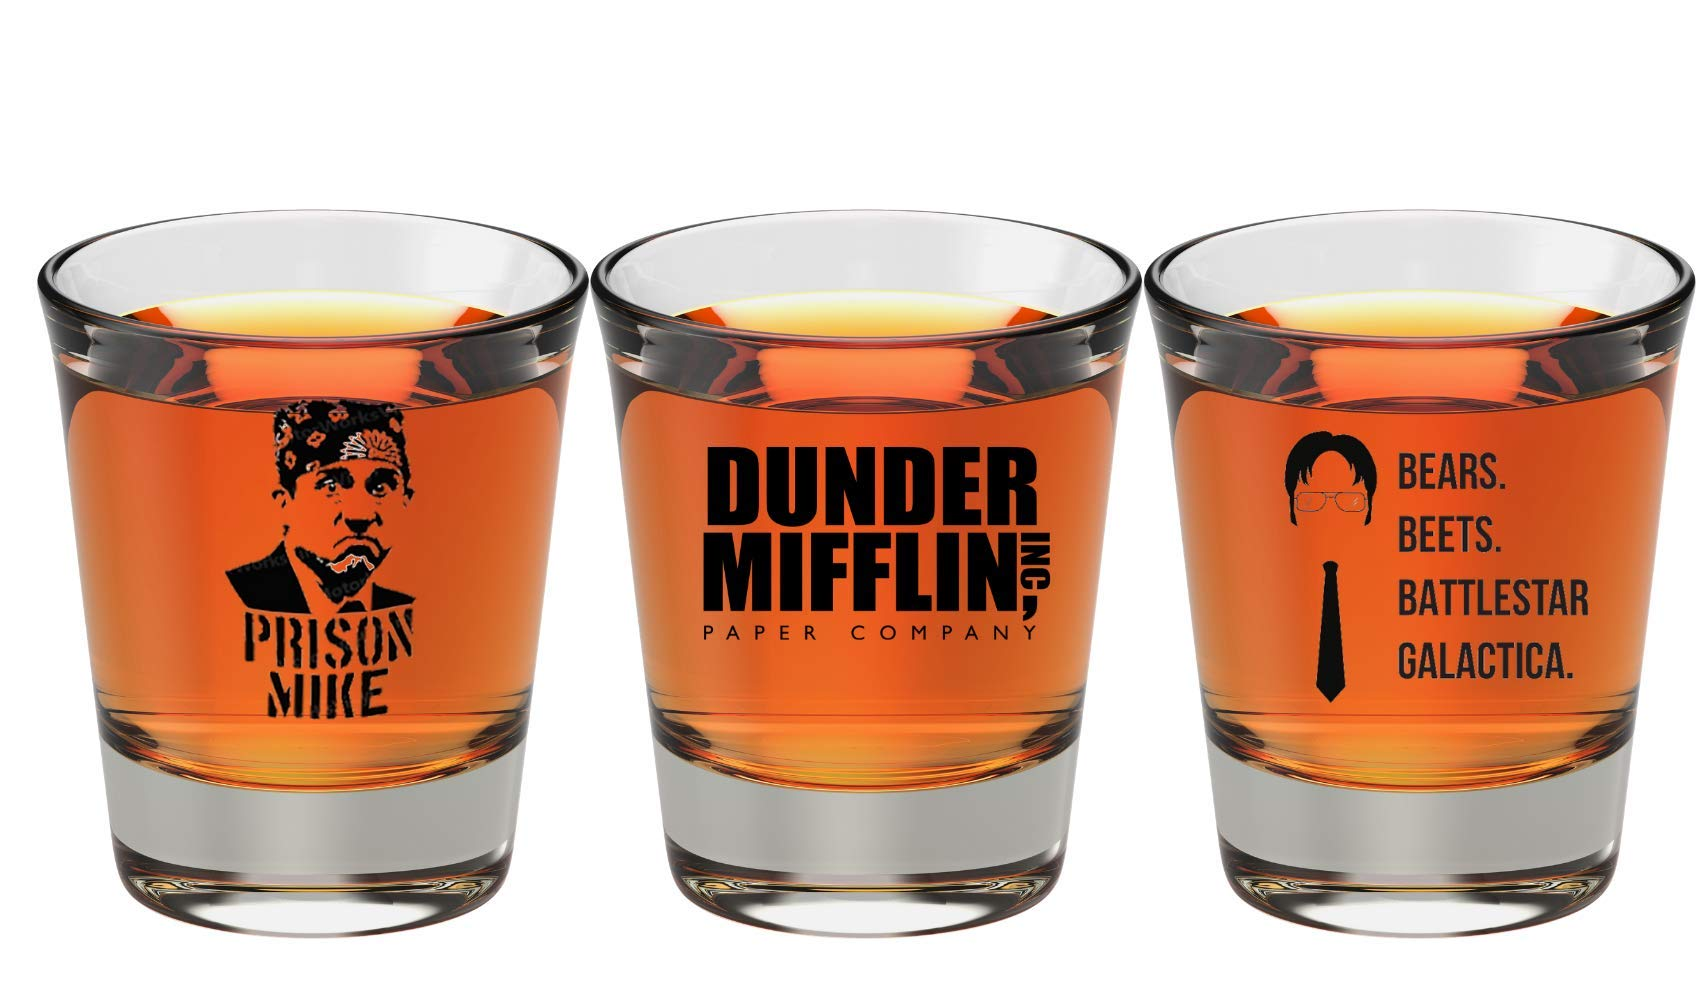 The Office Merchandise Shot Glass Gift Set - Prison Mike, Dunder Mifflin, Bears Beets Battlestar Galactica - The Office Gifts For Men And Women